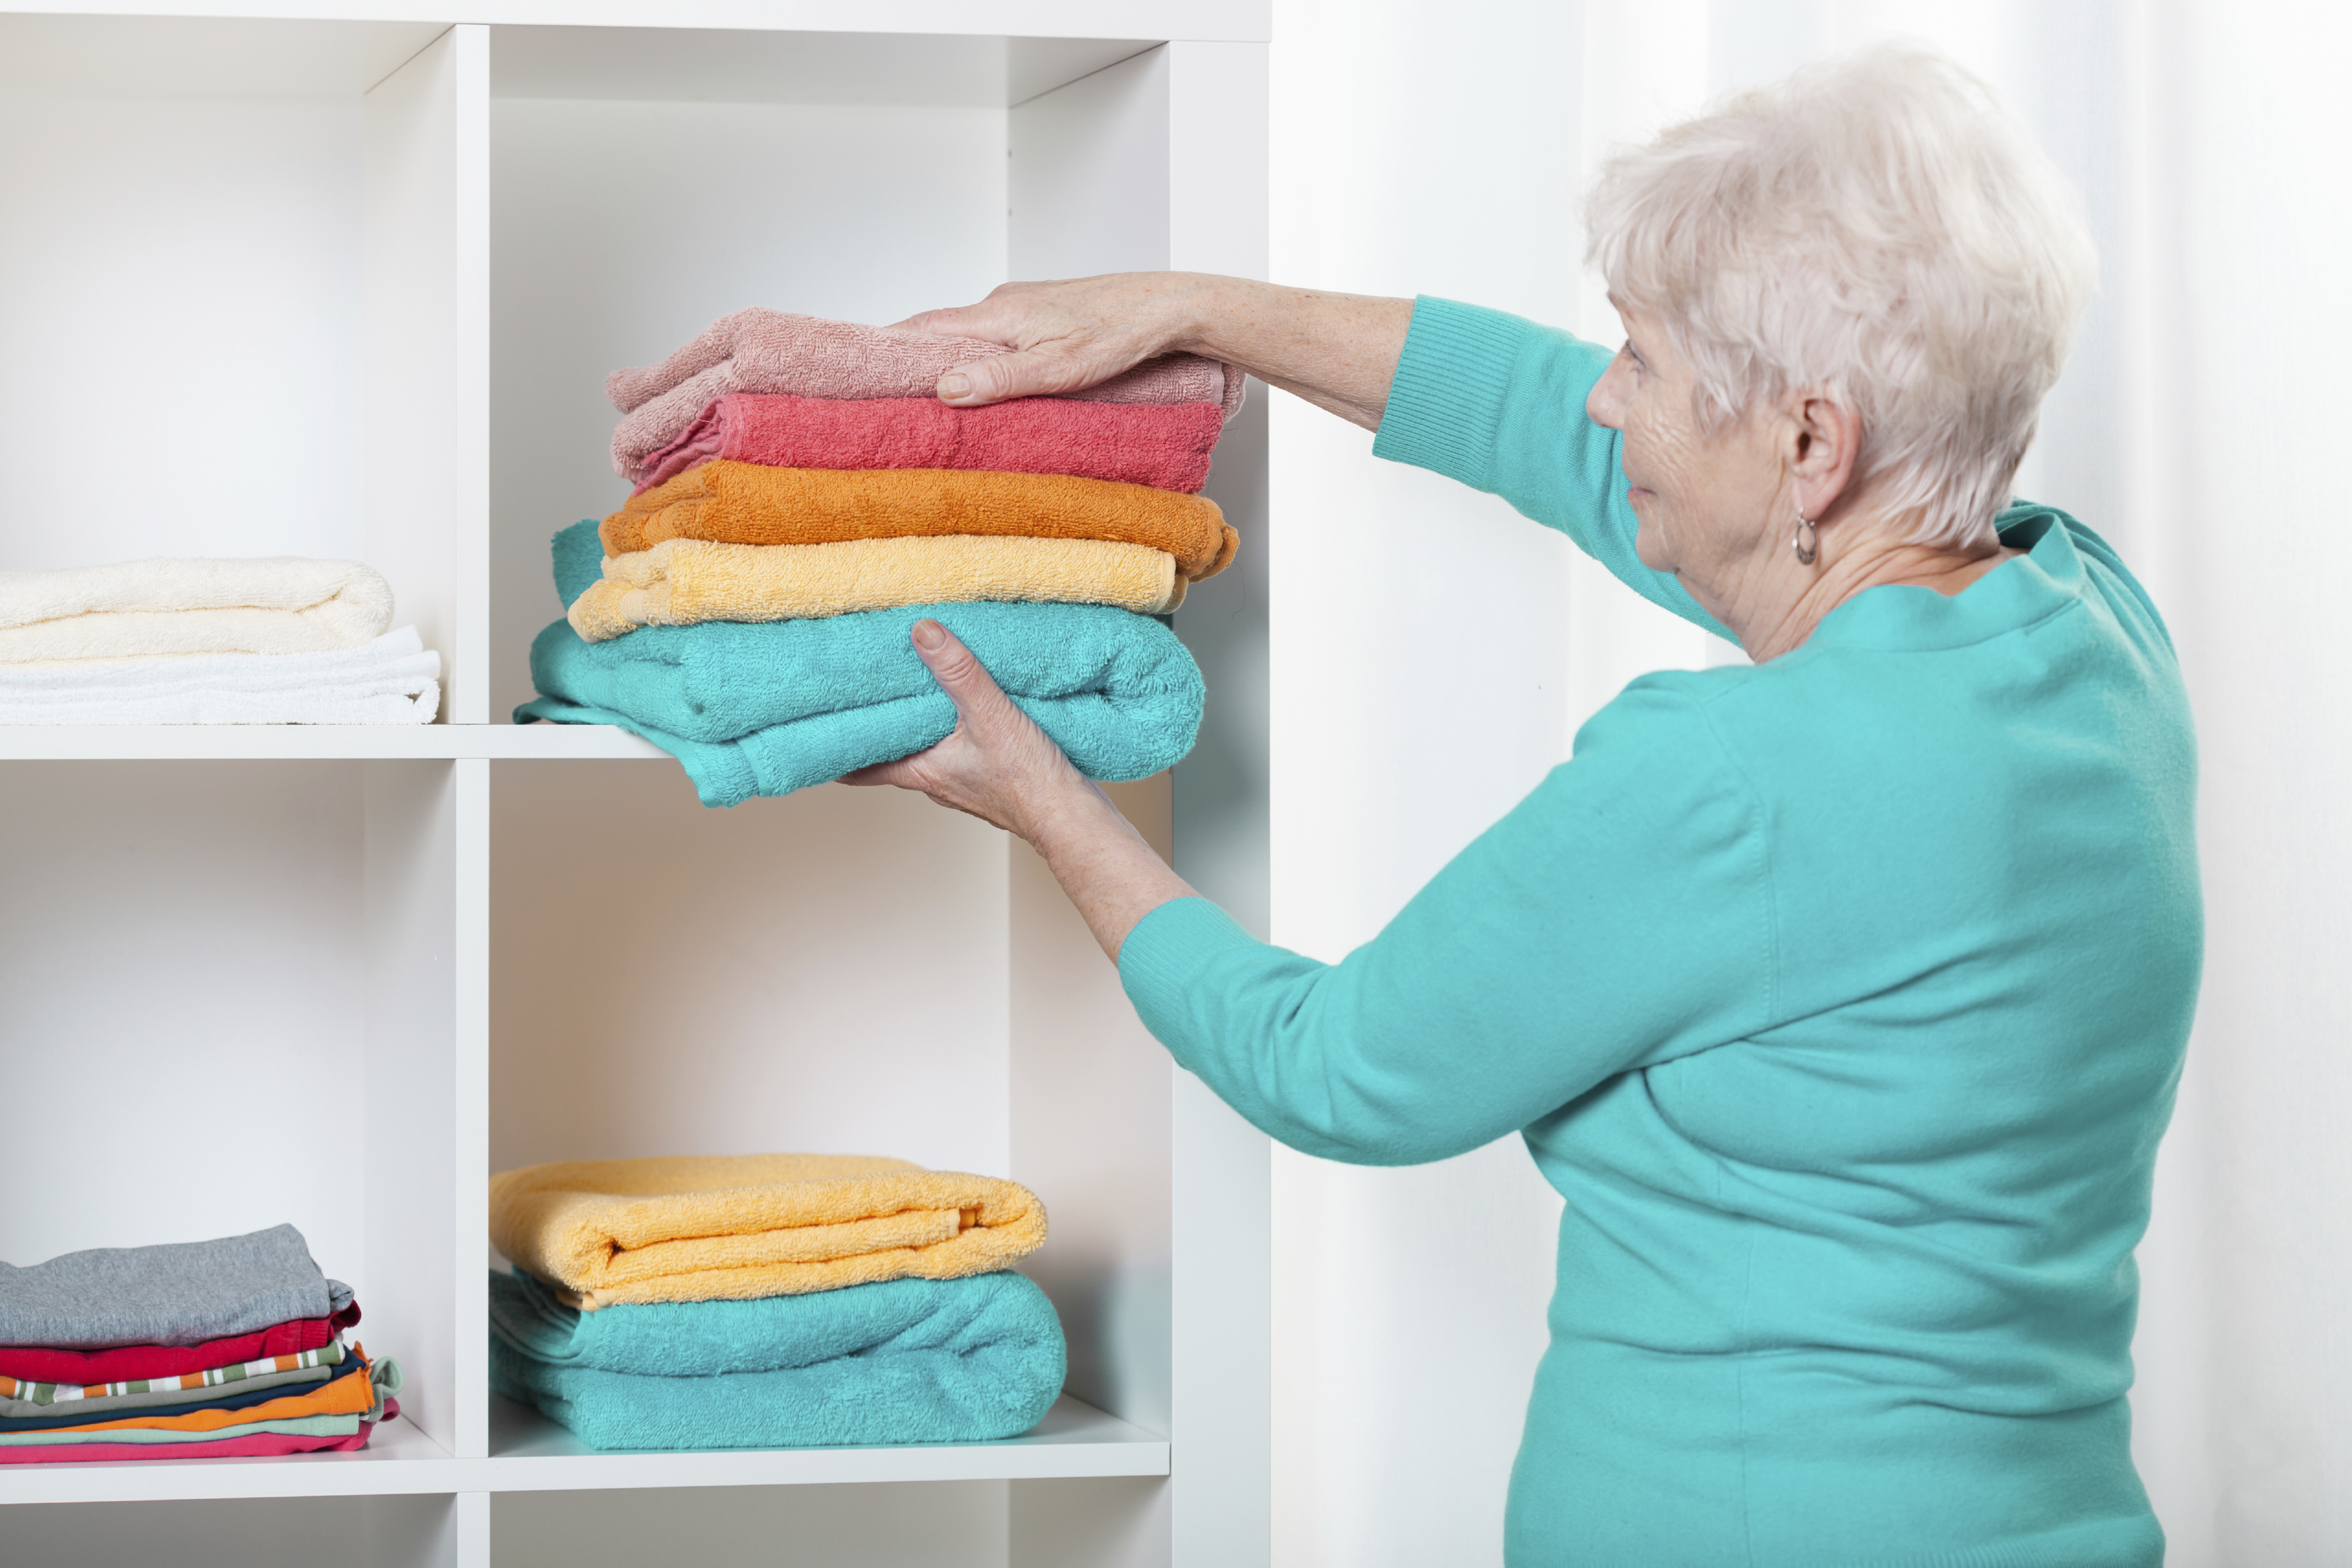 Woman putting towels to the shelf - Autumn Leaves